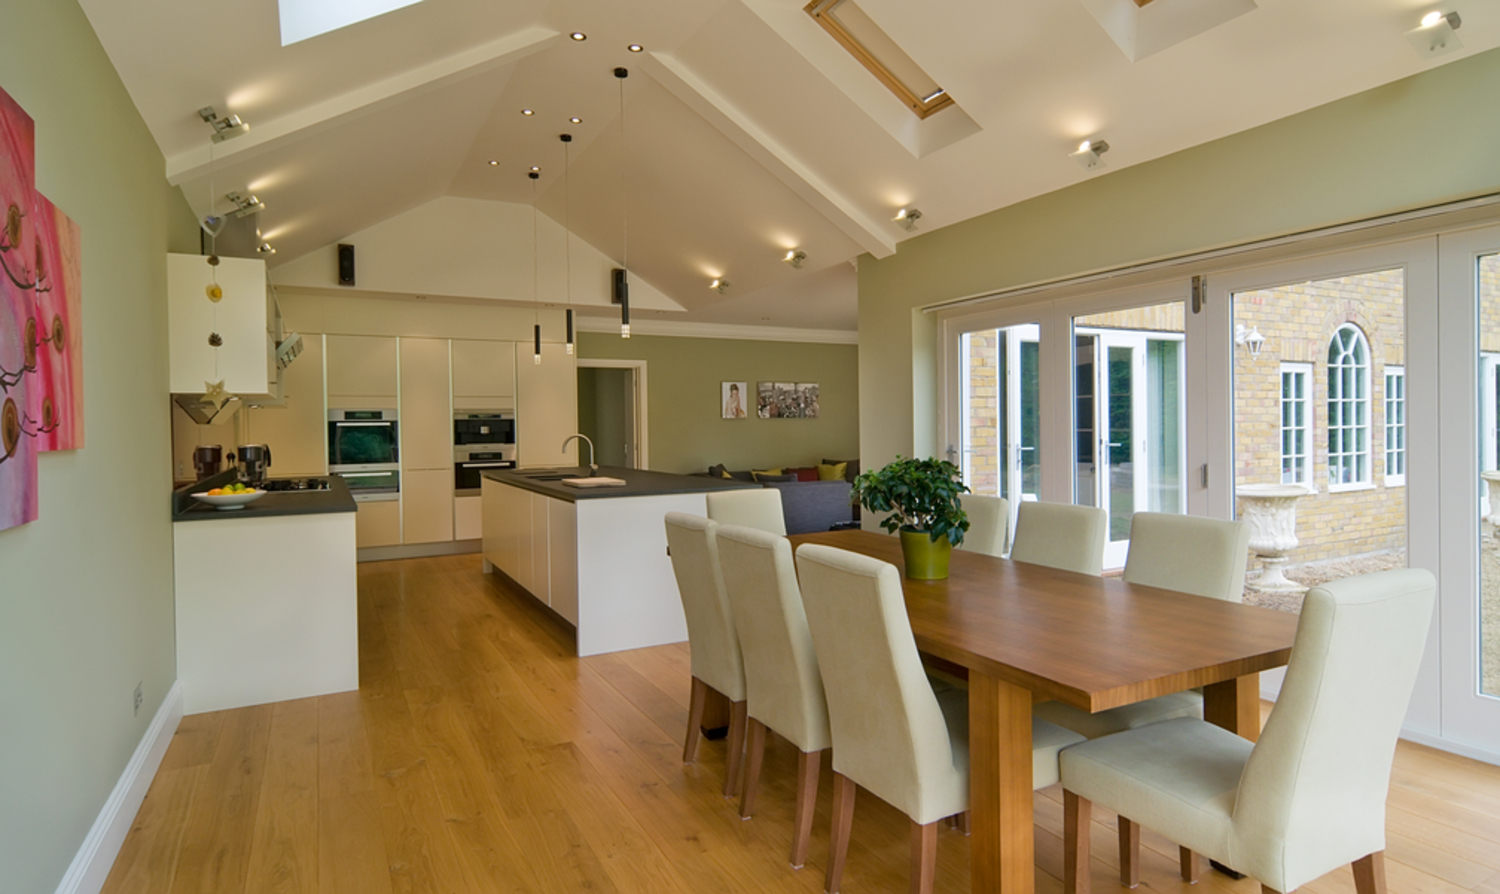 Dining room table kitchen view of a house extension by Harvey Norman Architects Cambridge